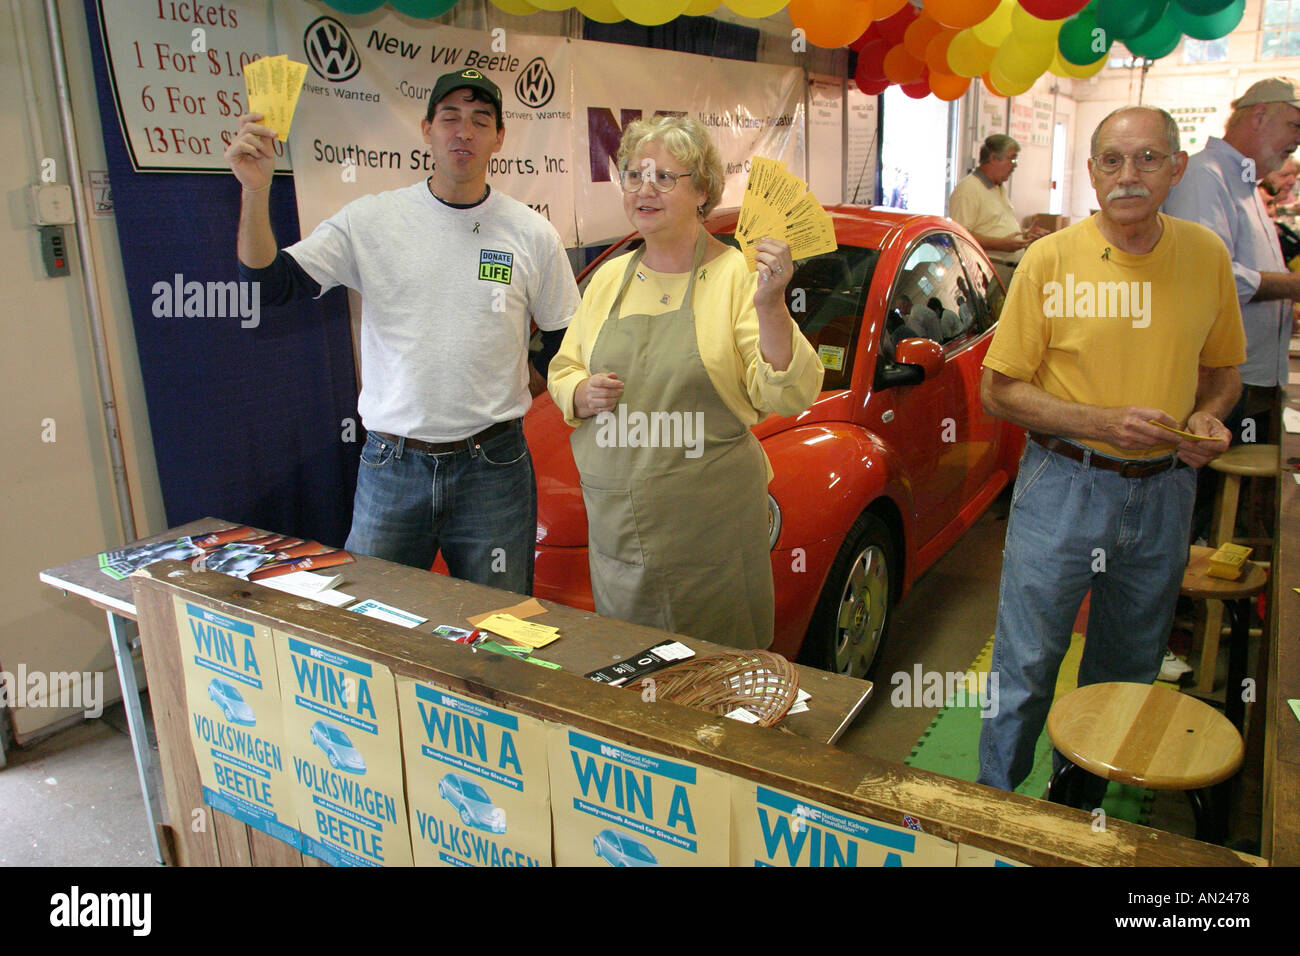 raleigh north carolina state fair selling raffle ticket for new car stock photo royalty free. Black Bedroom Furniture Sets. Home Design Ideas